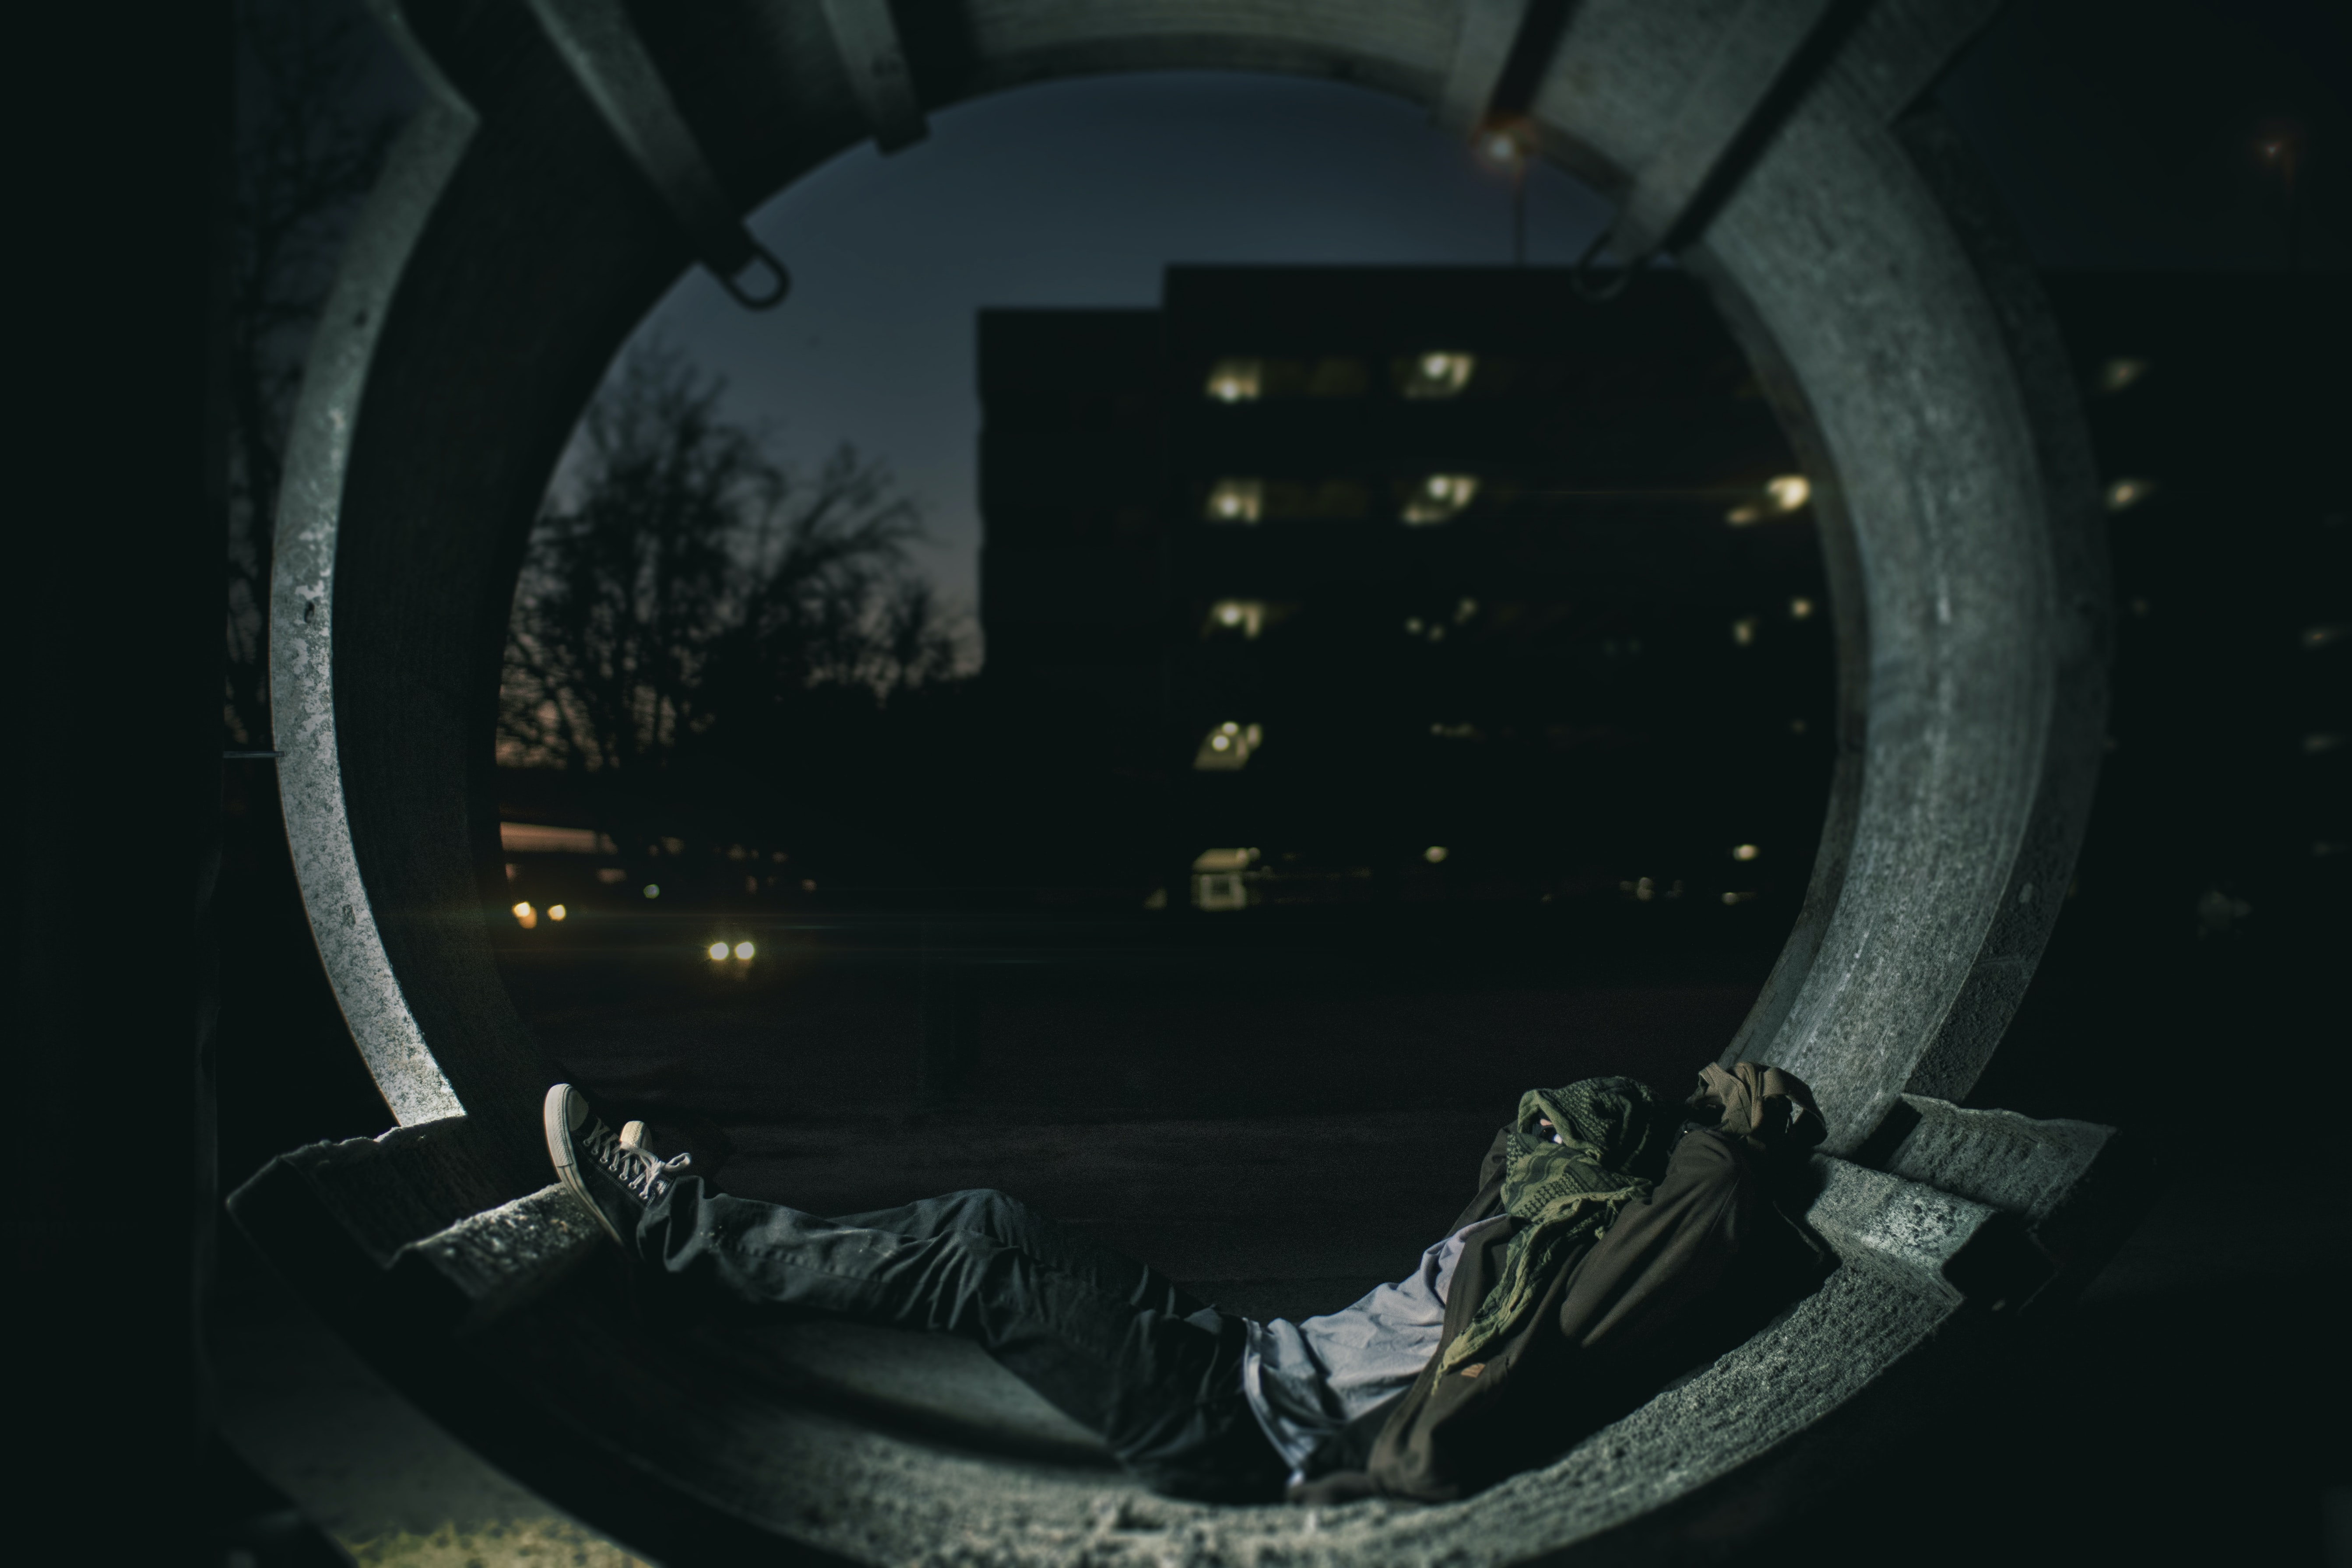 Homeless person in an urban area sleeps in a circular structure near a building with lights